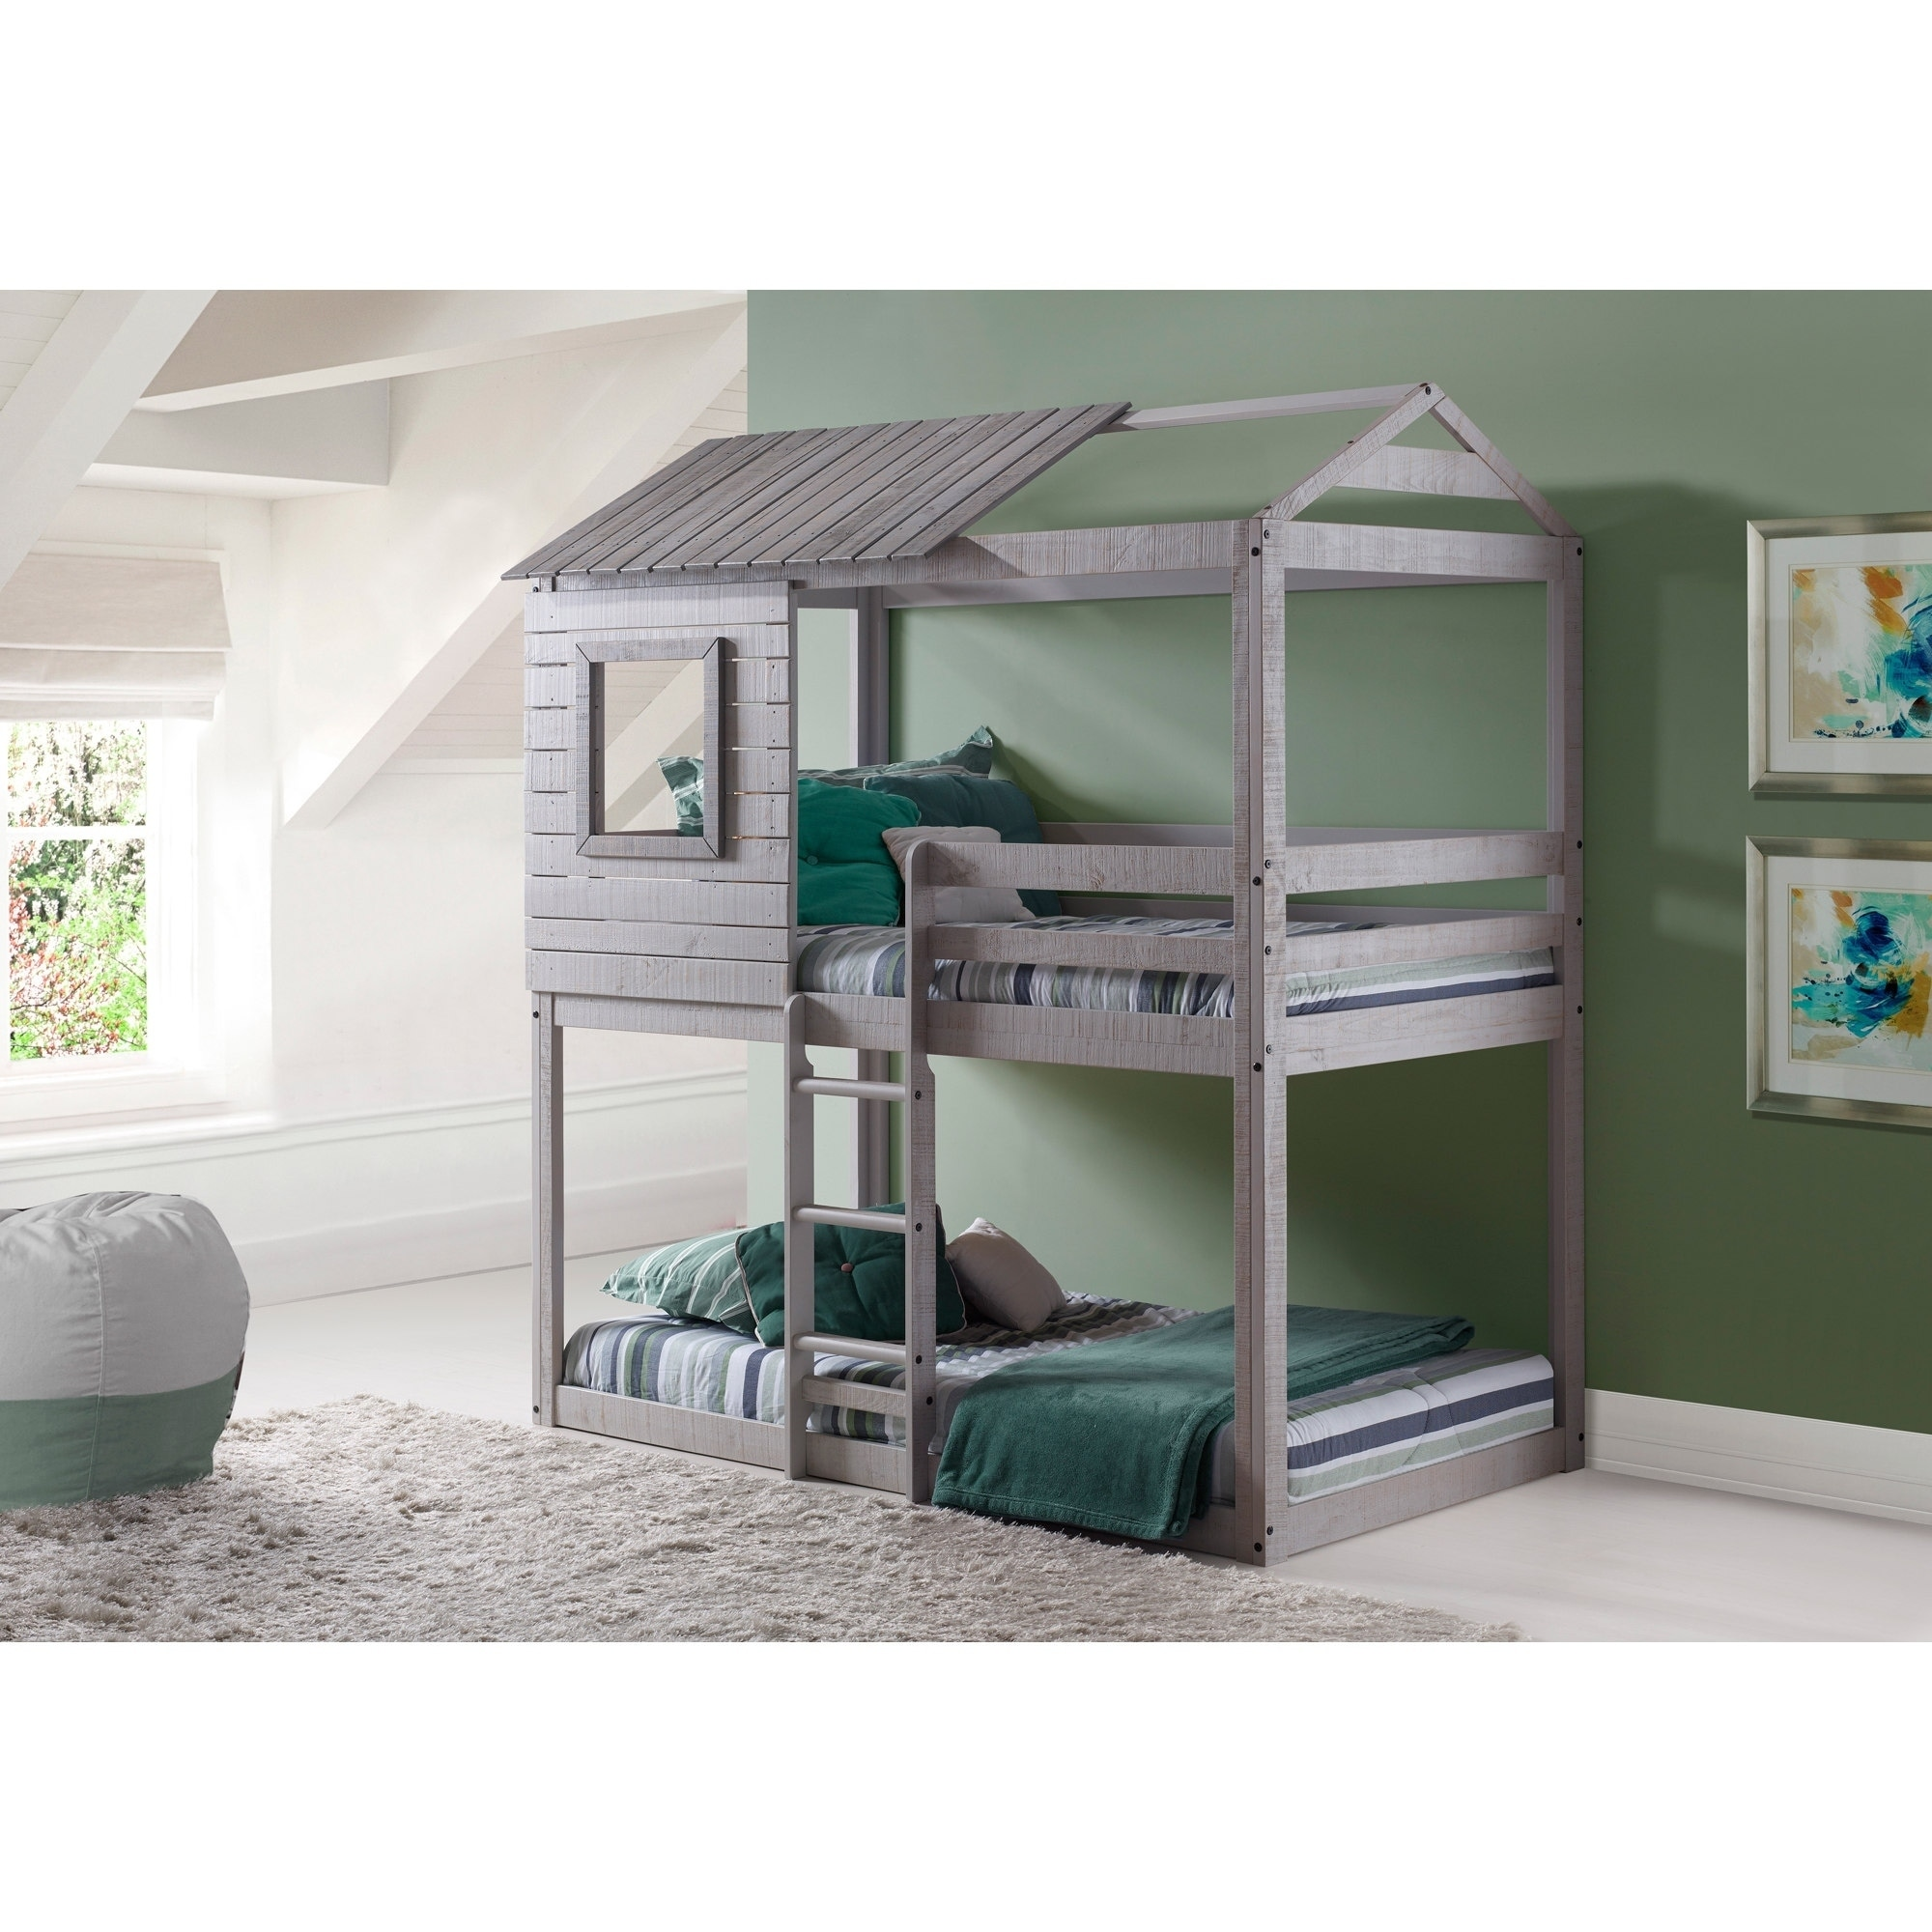 Donco Kids Bunk Bed